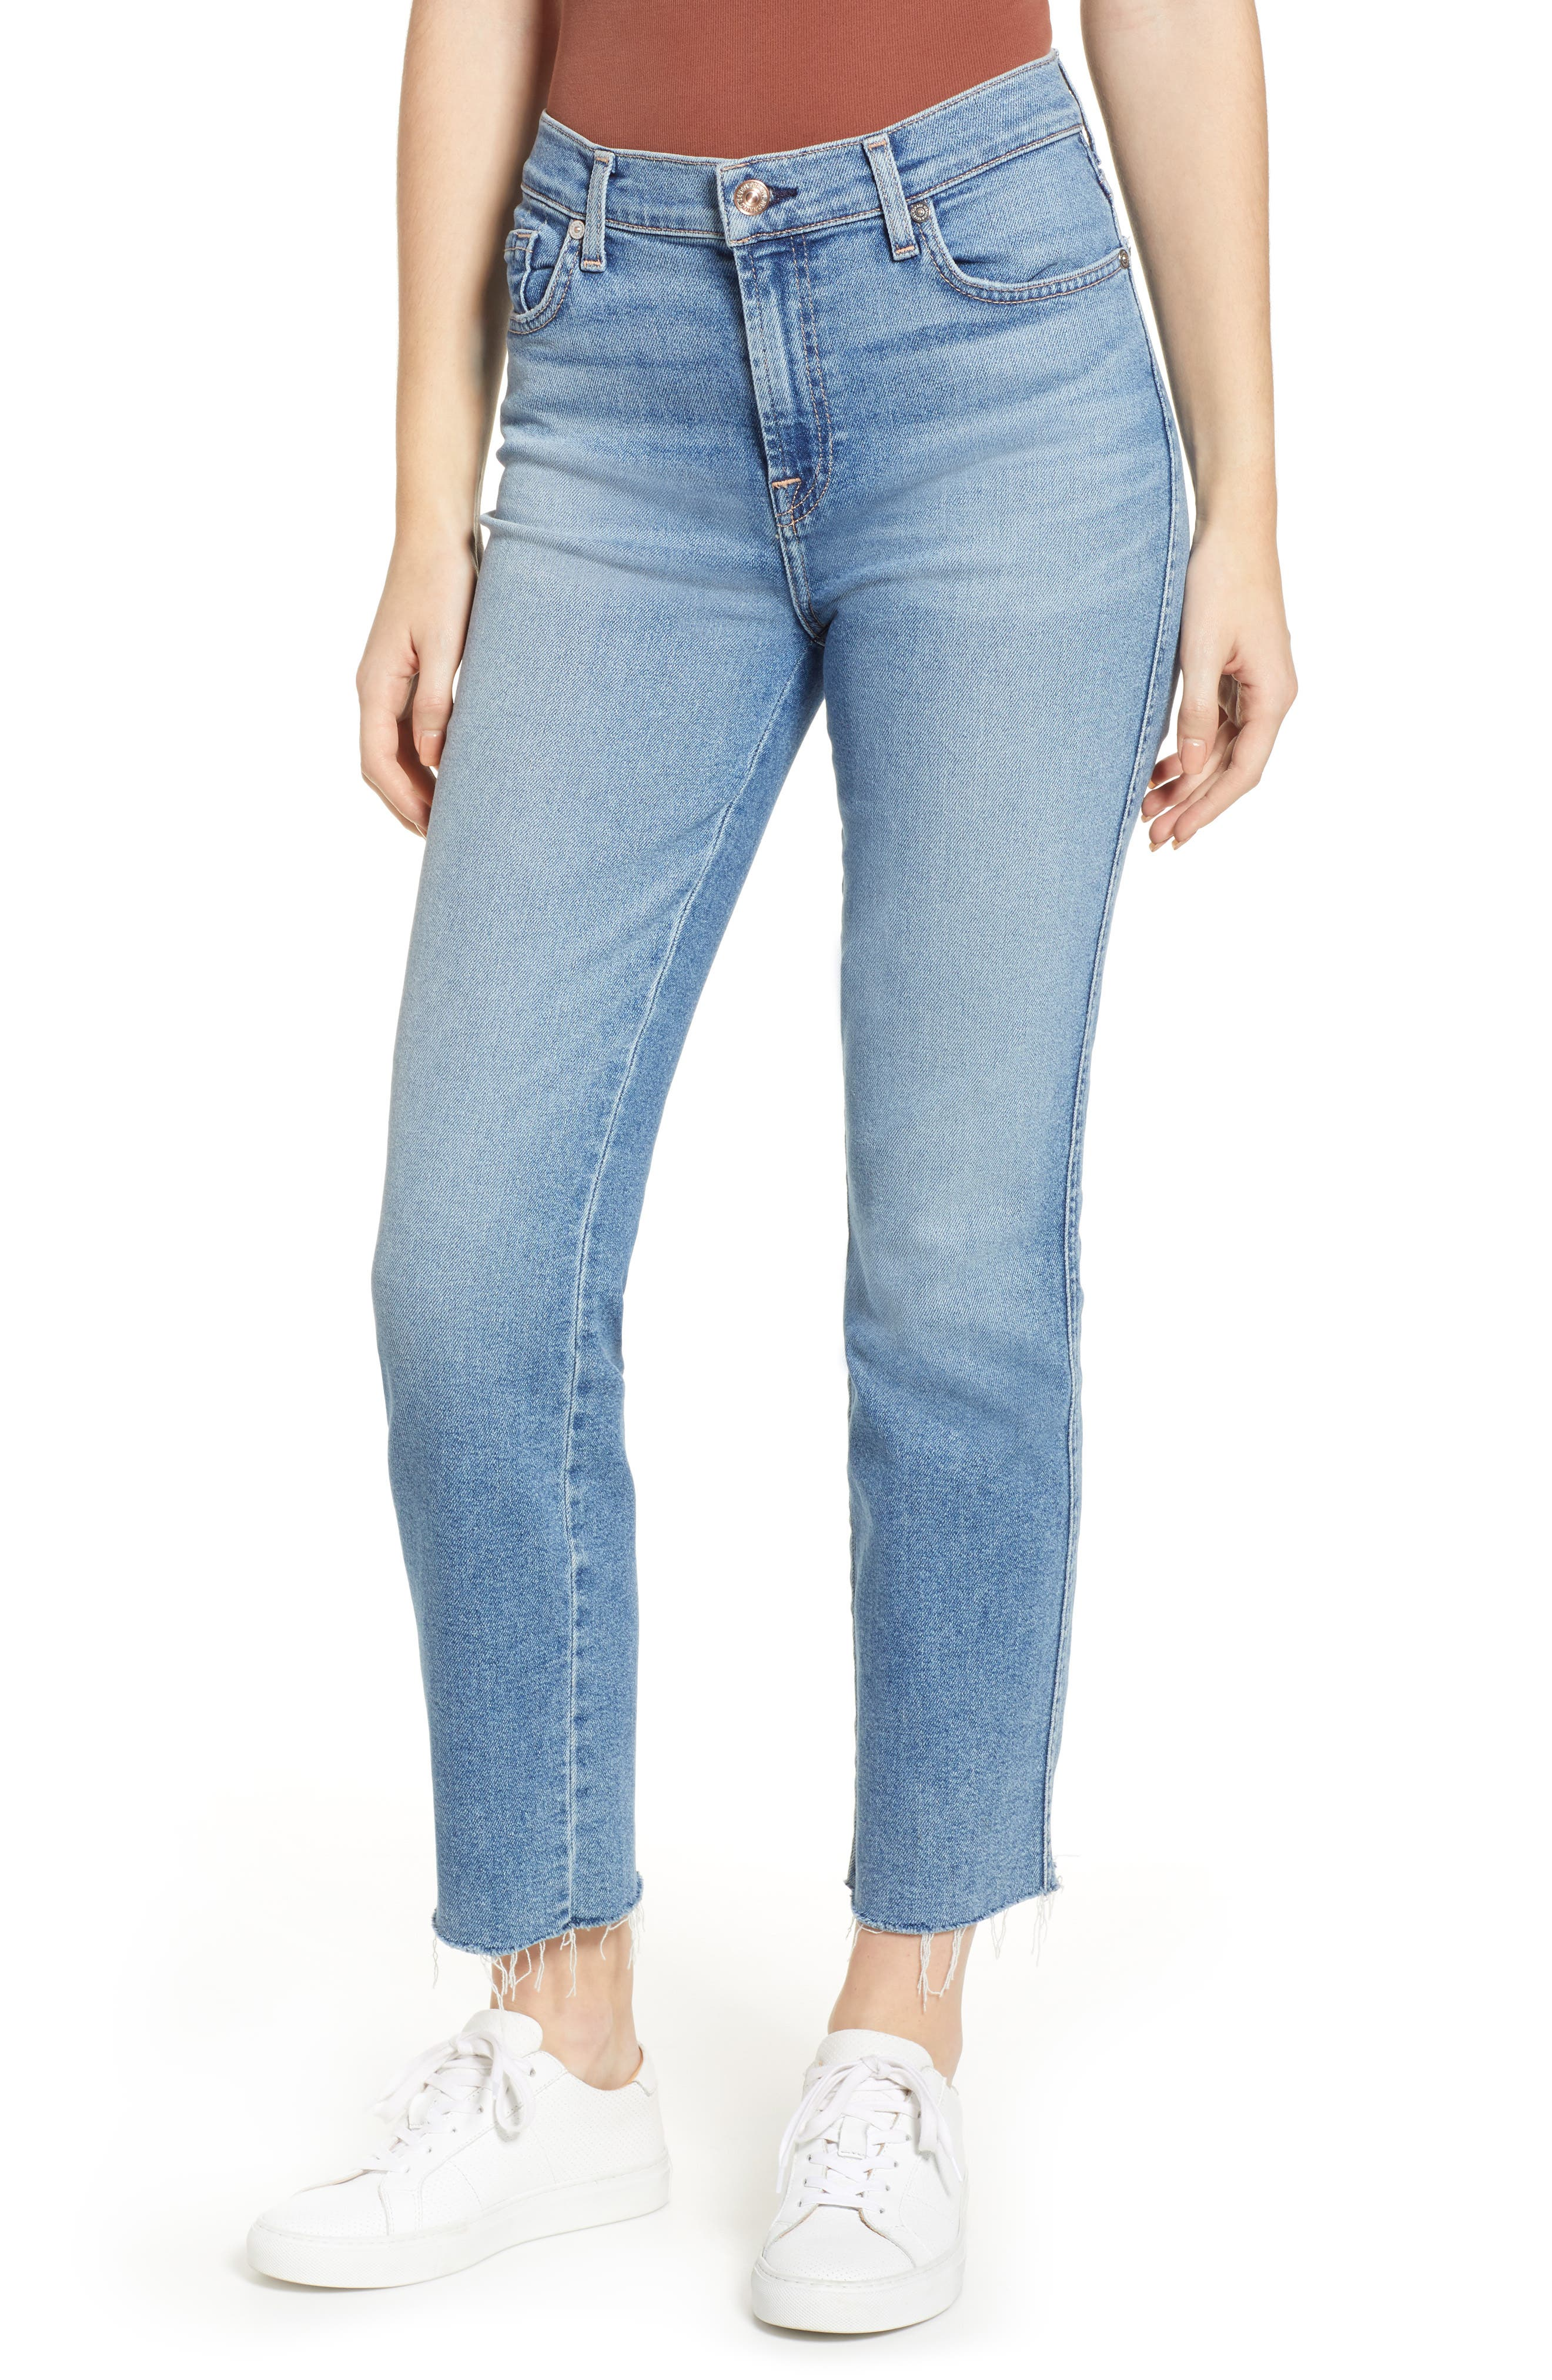 7 FOR ALL MANKIND<SUP>®</SUP>, Edie High Waist Crop Jeans, Main thumbnail 1, color, LUXE VINTAGE FLORA